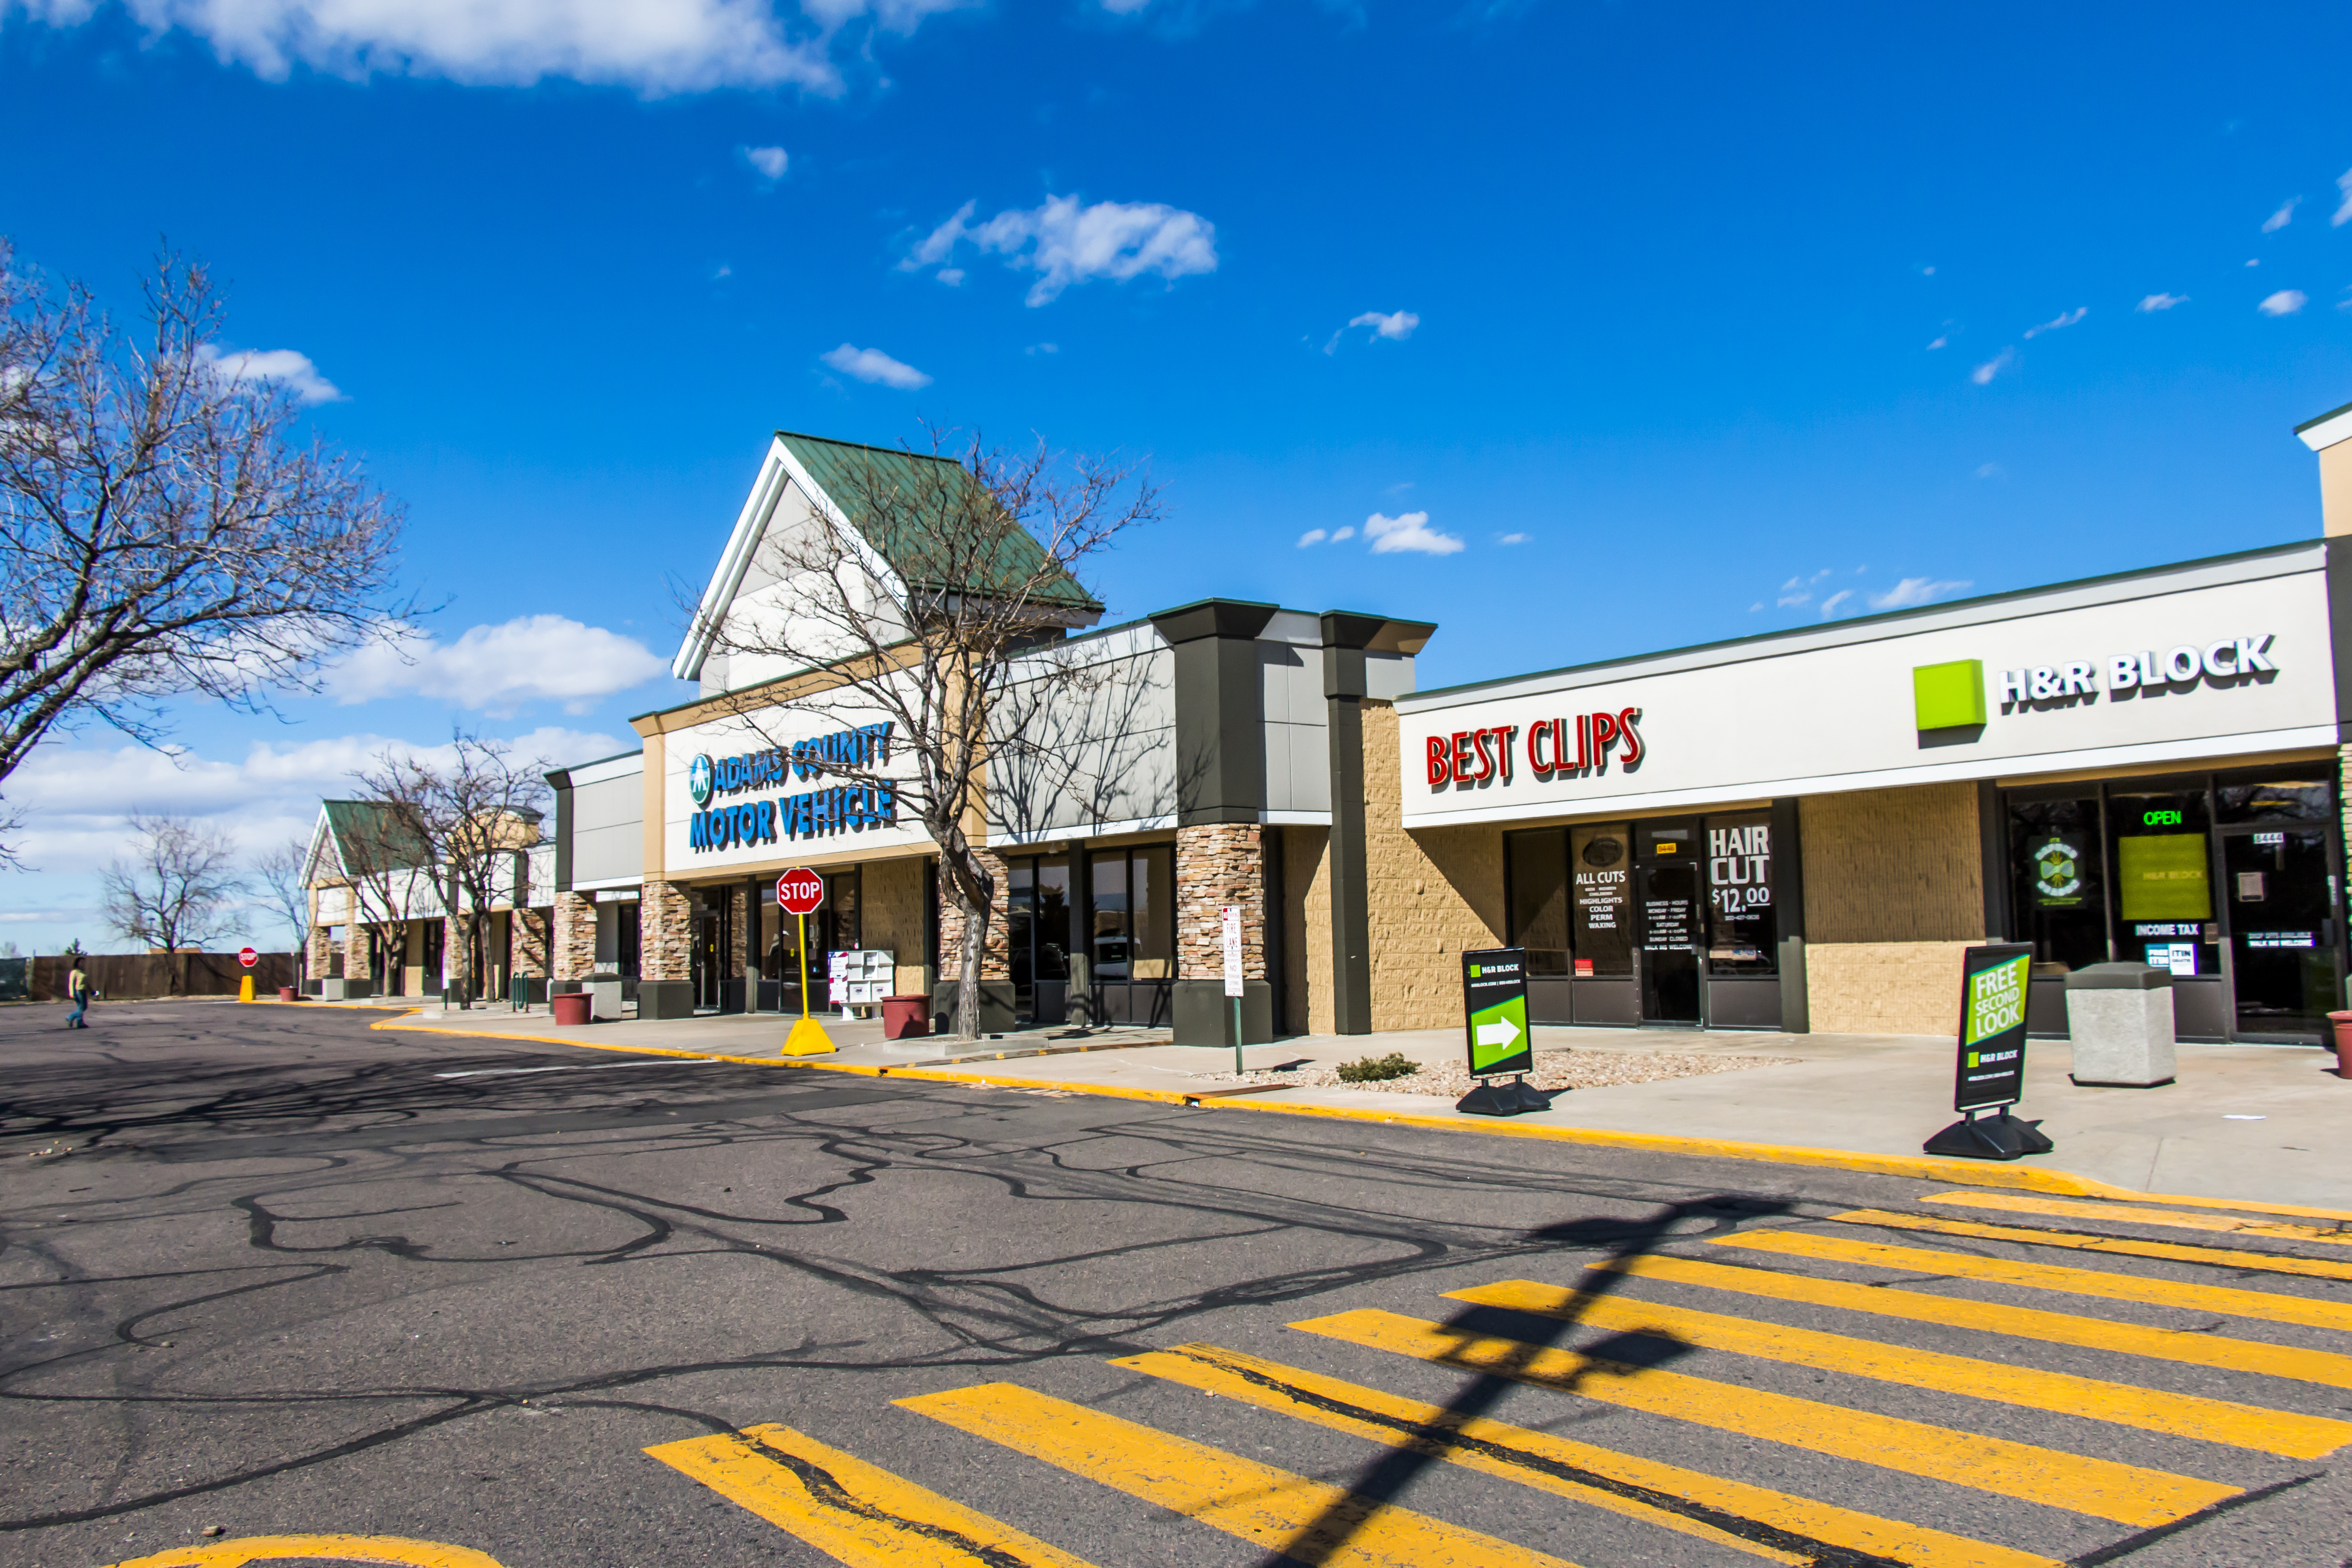 CBRE Completes $13M Sale of Largest Non-Grocery Anchored Shopping Center Sale YTD in Metro Denver